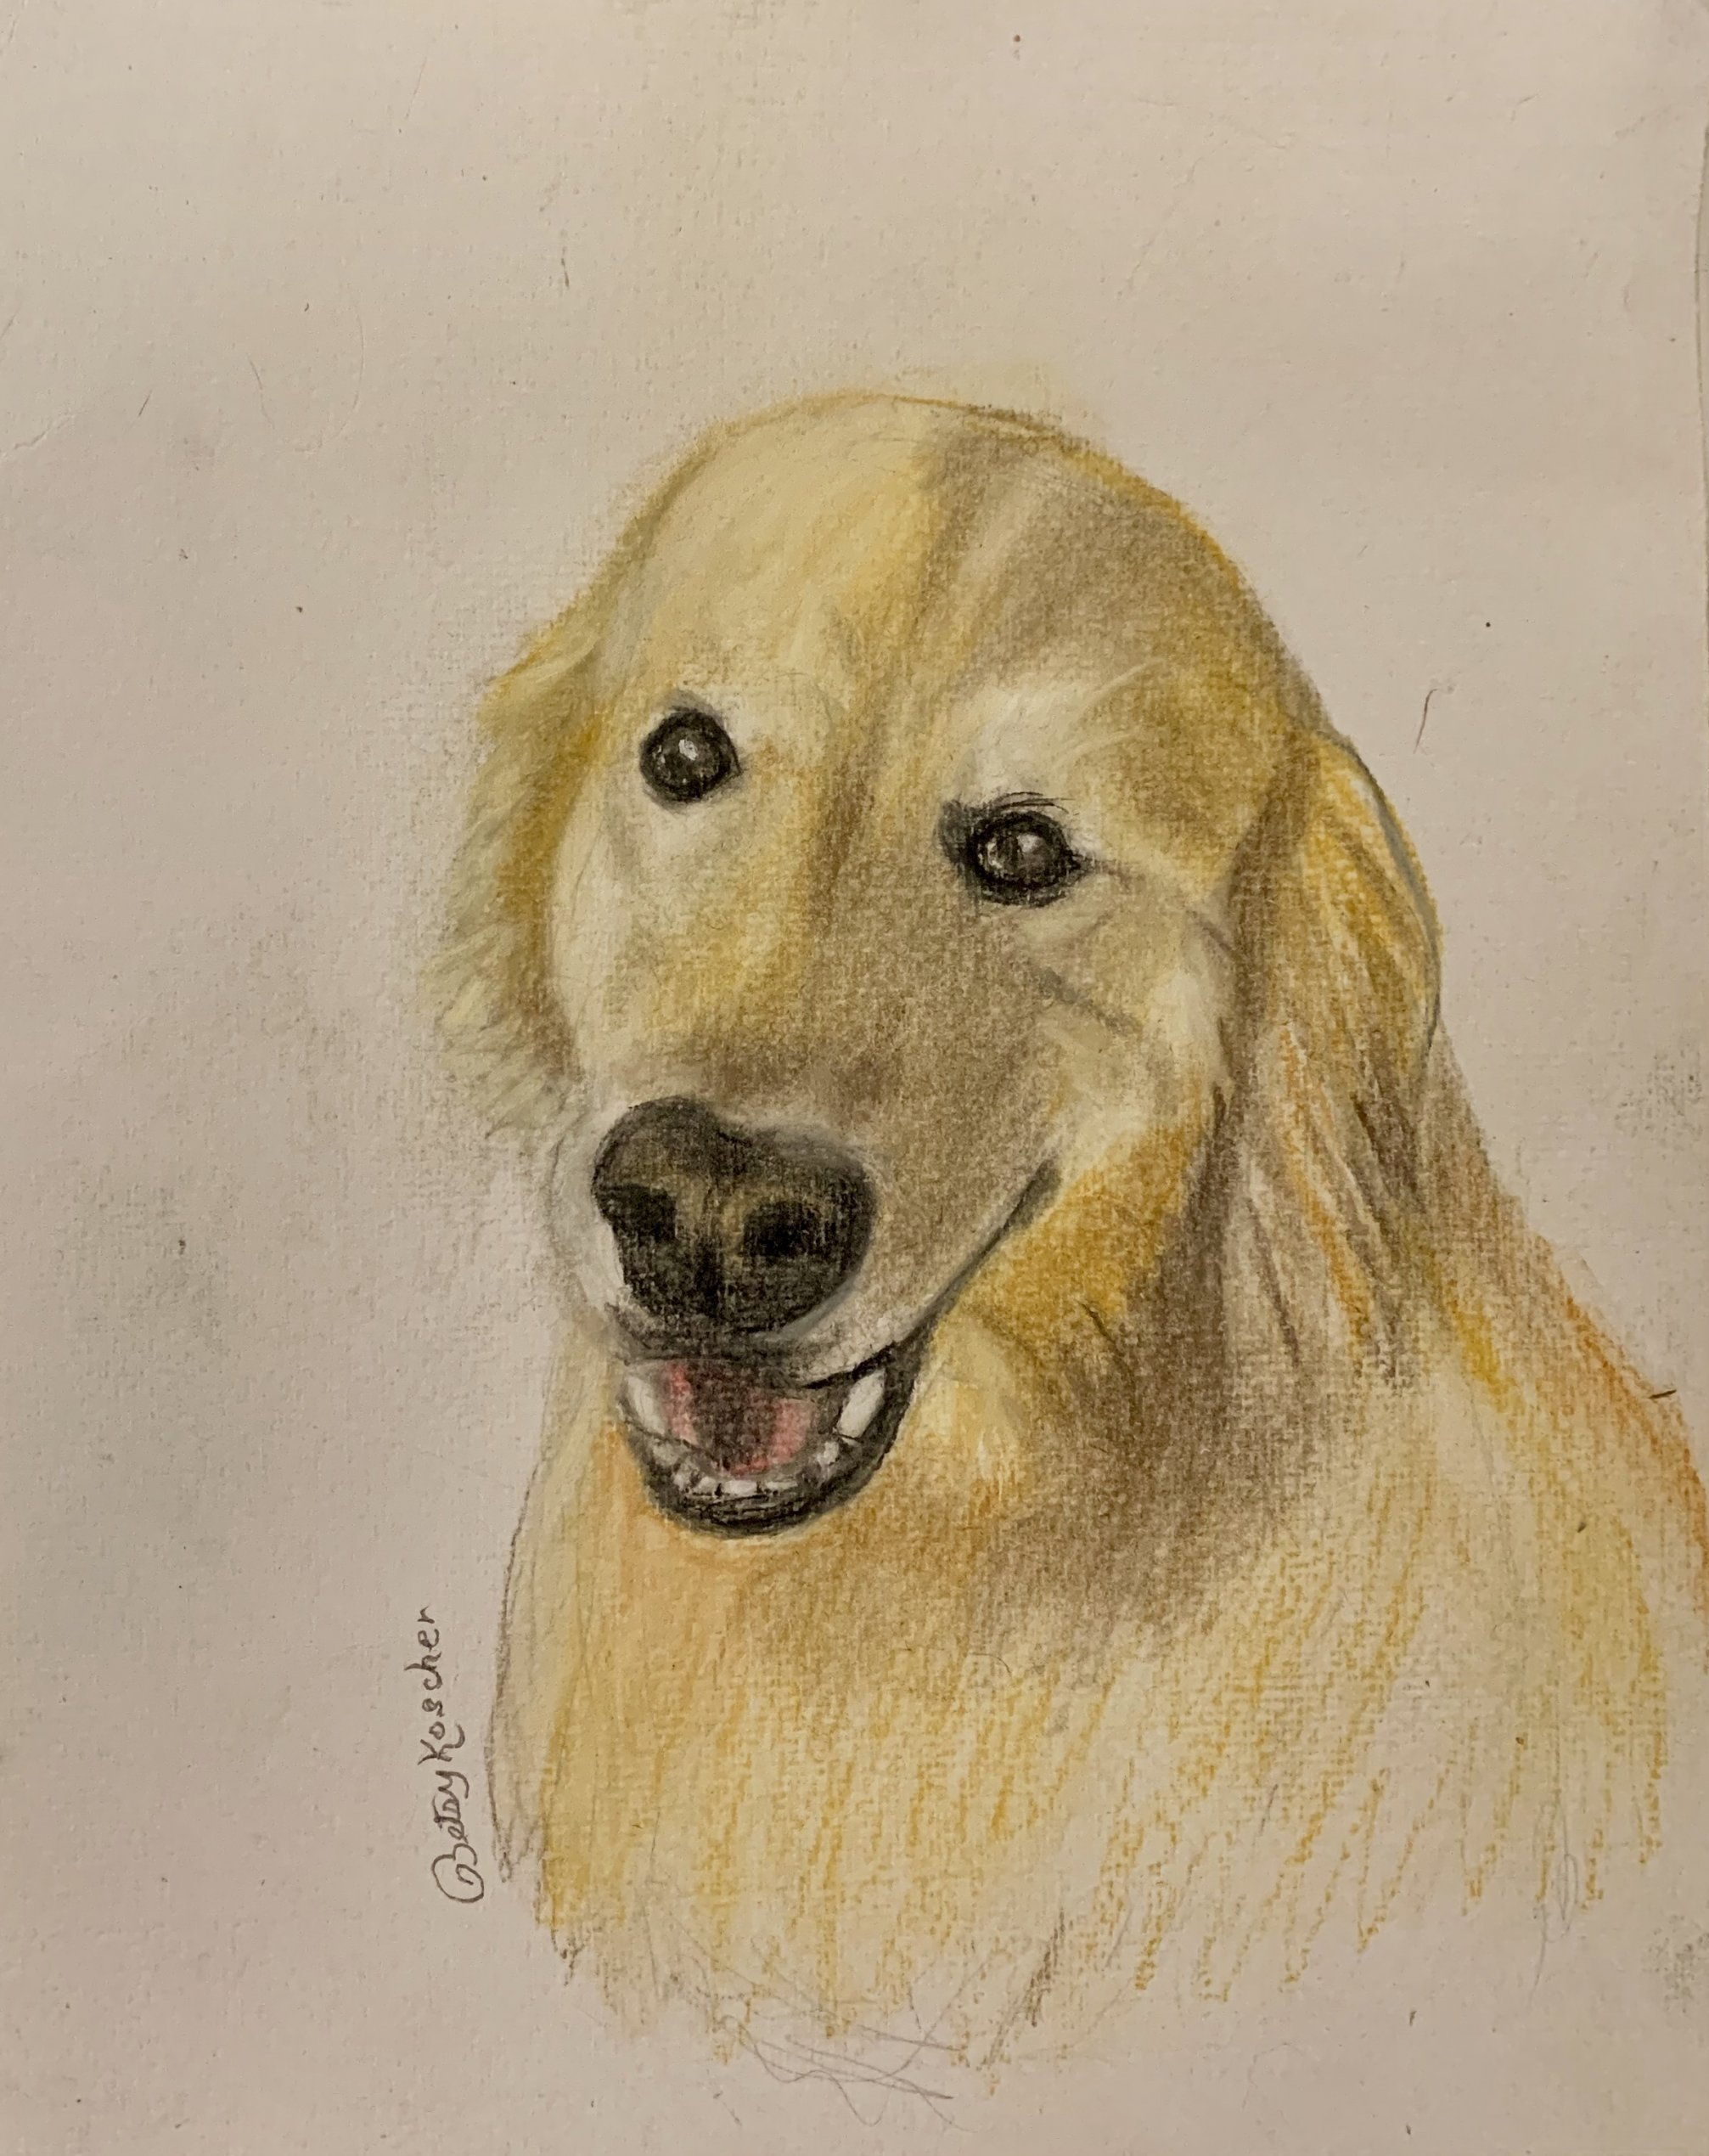 8X10 pastel dog portrait by Betsy Koscher $100.00